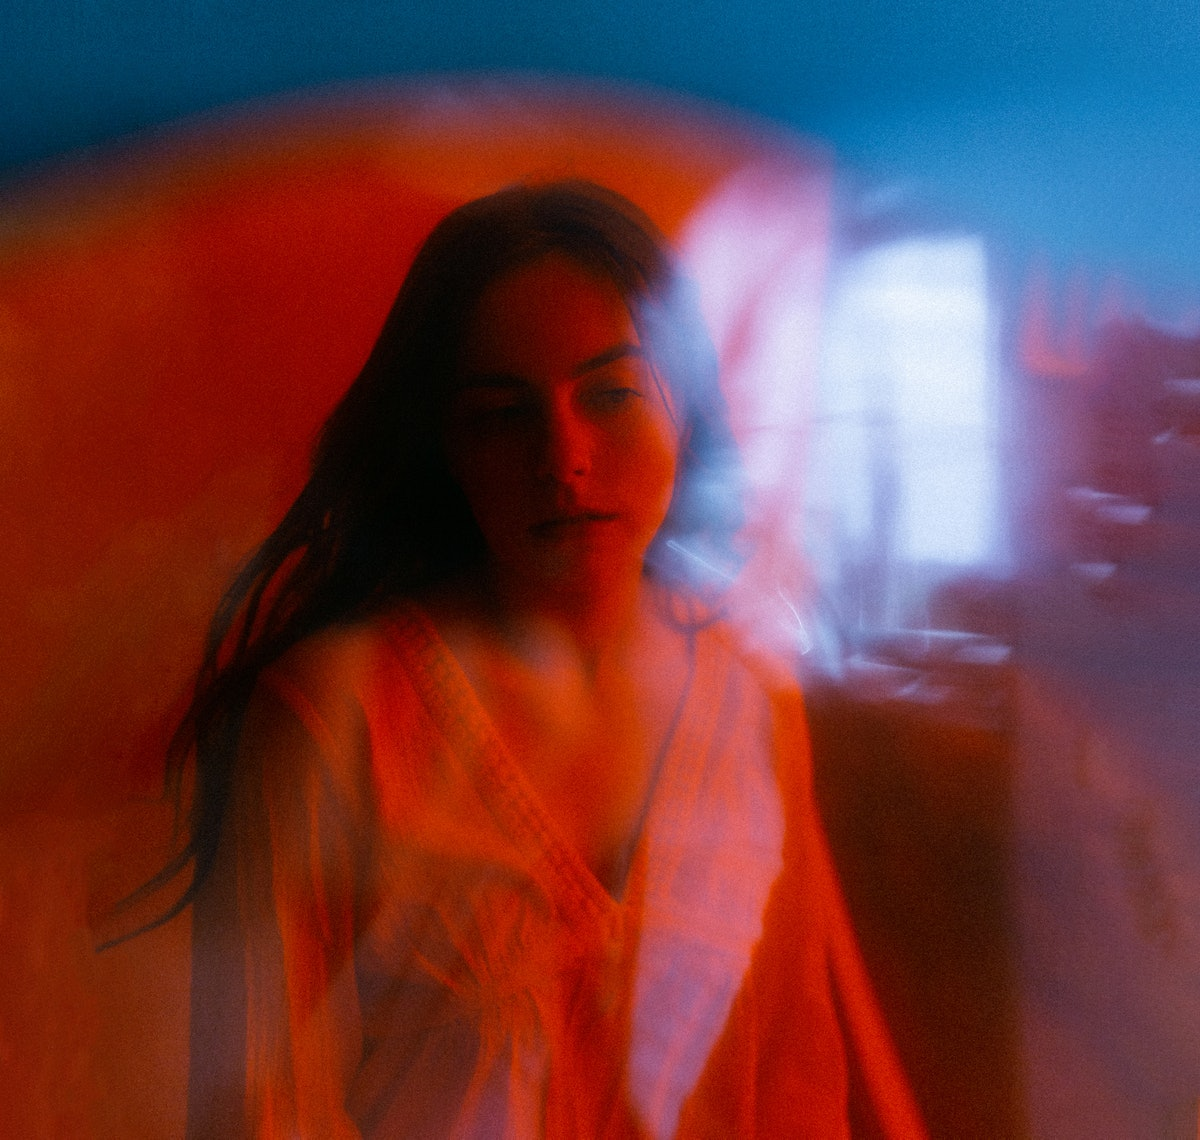 Young woman in red lighting wondering how the July 2021 new moon will affect her zodiac sign, per he...